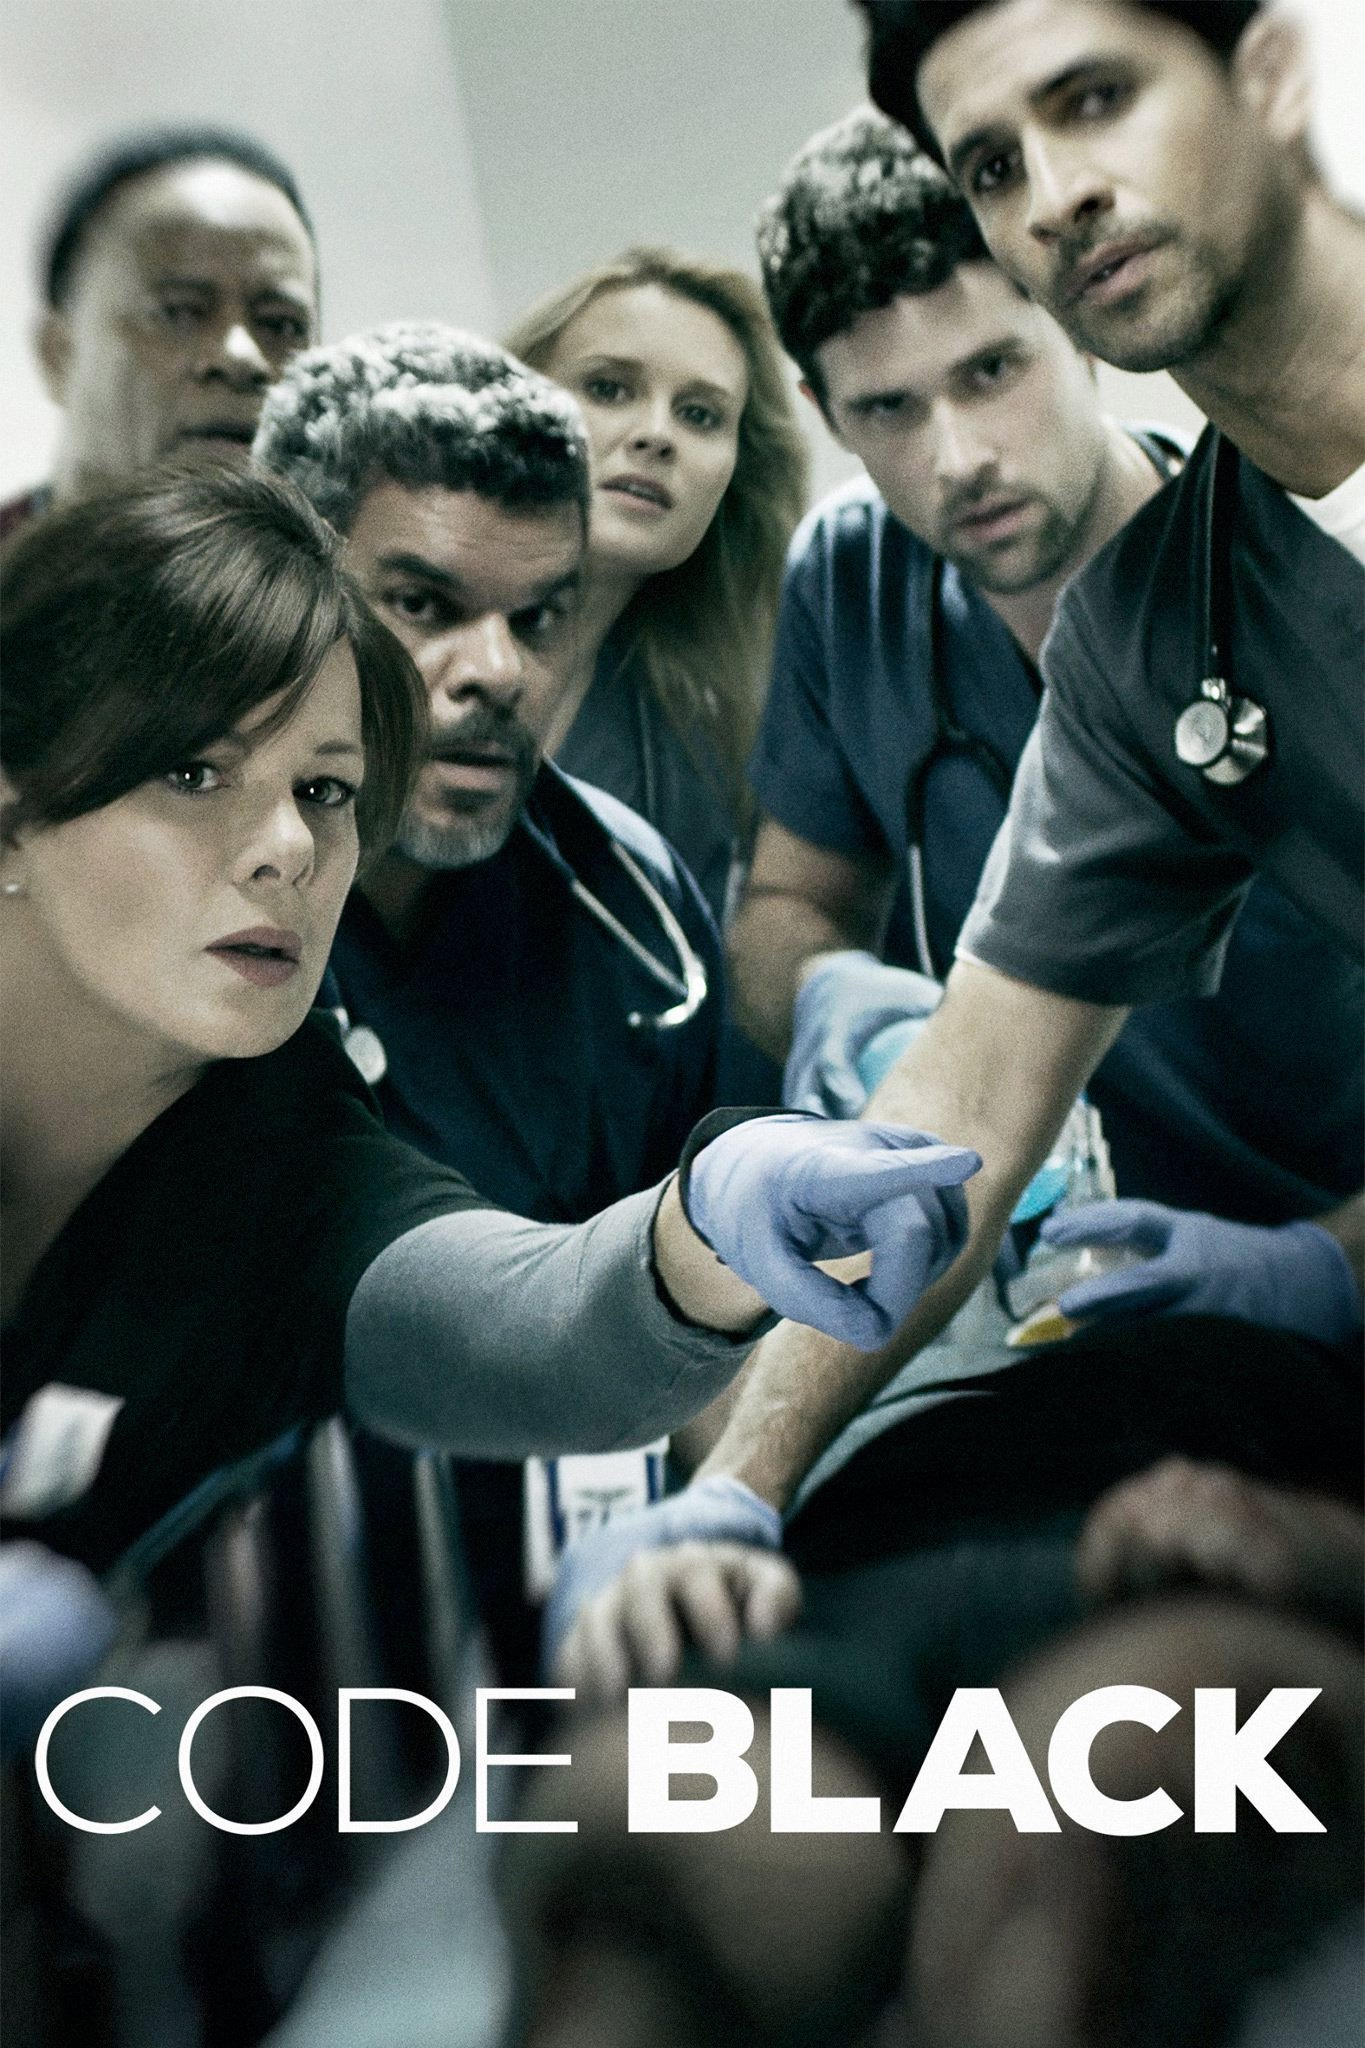 Code Black TV Show Poster - ID: 76749 - Image Abyss